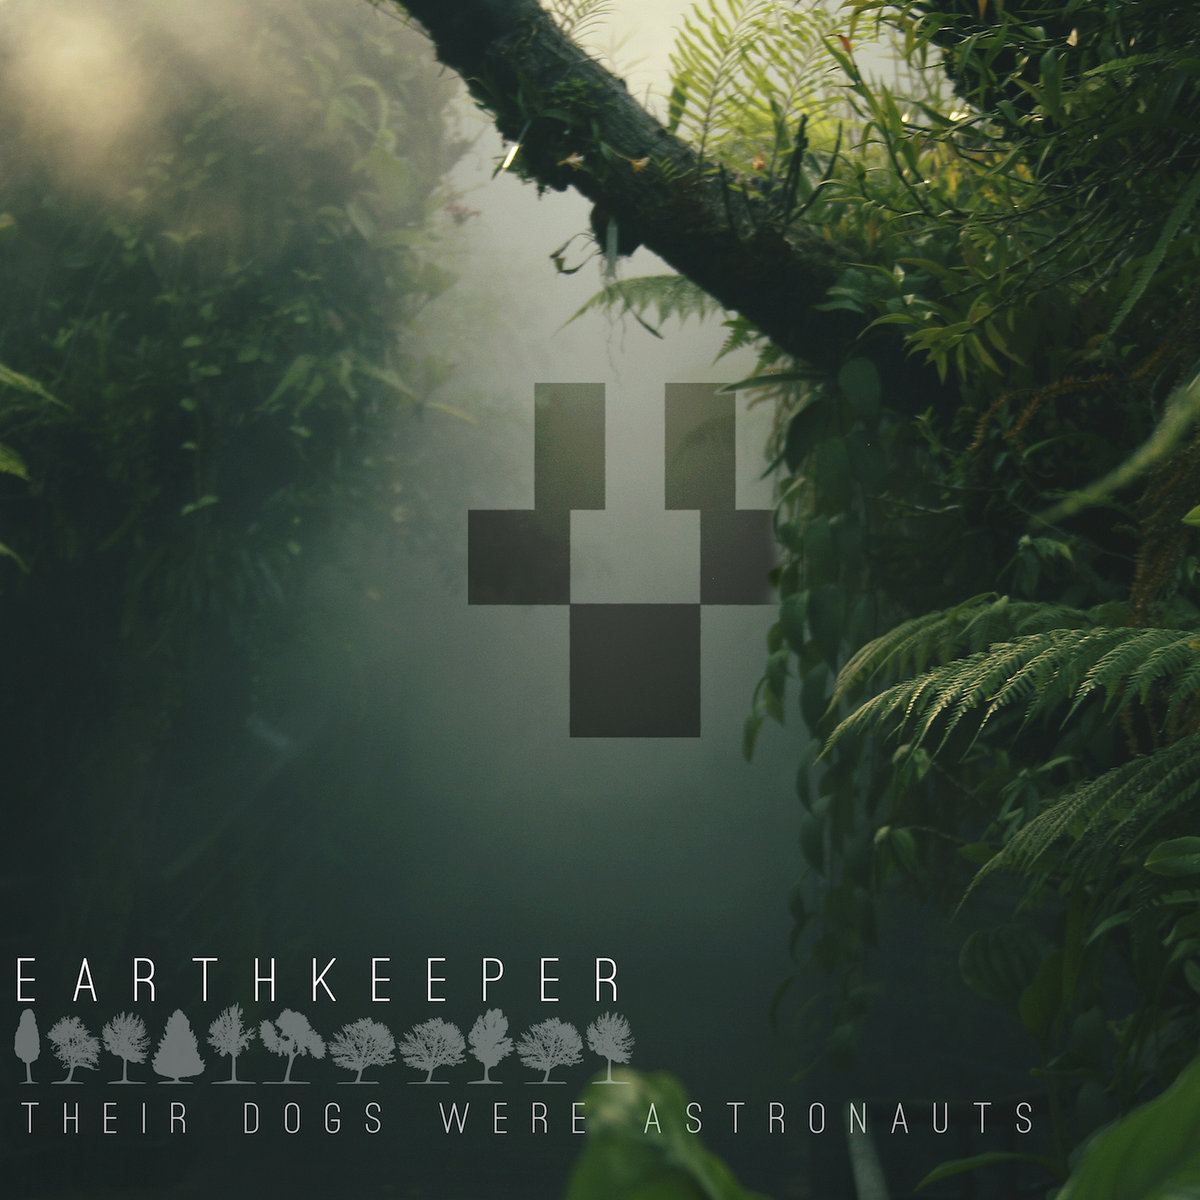 Their Dogs Were Astronauts - Coming Into Being @ 'Earthkeeper' album (instrumental metal, metal)